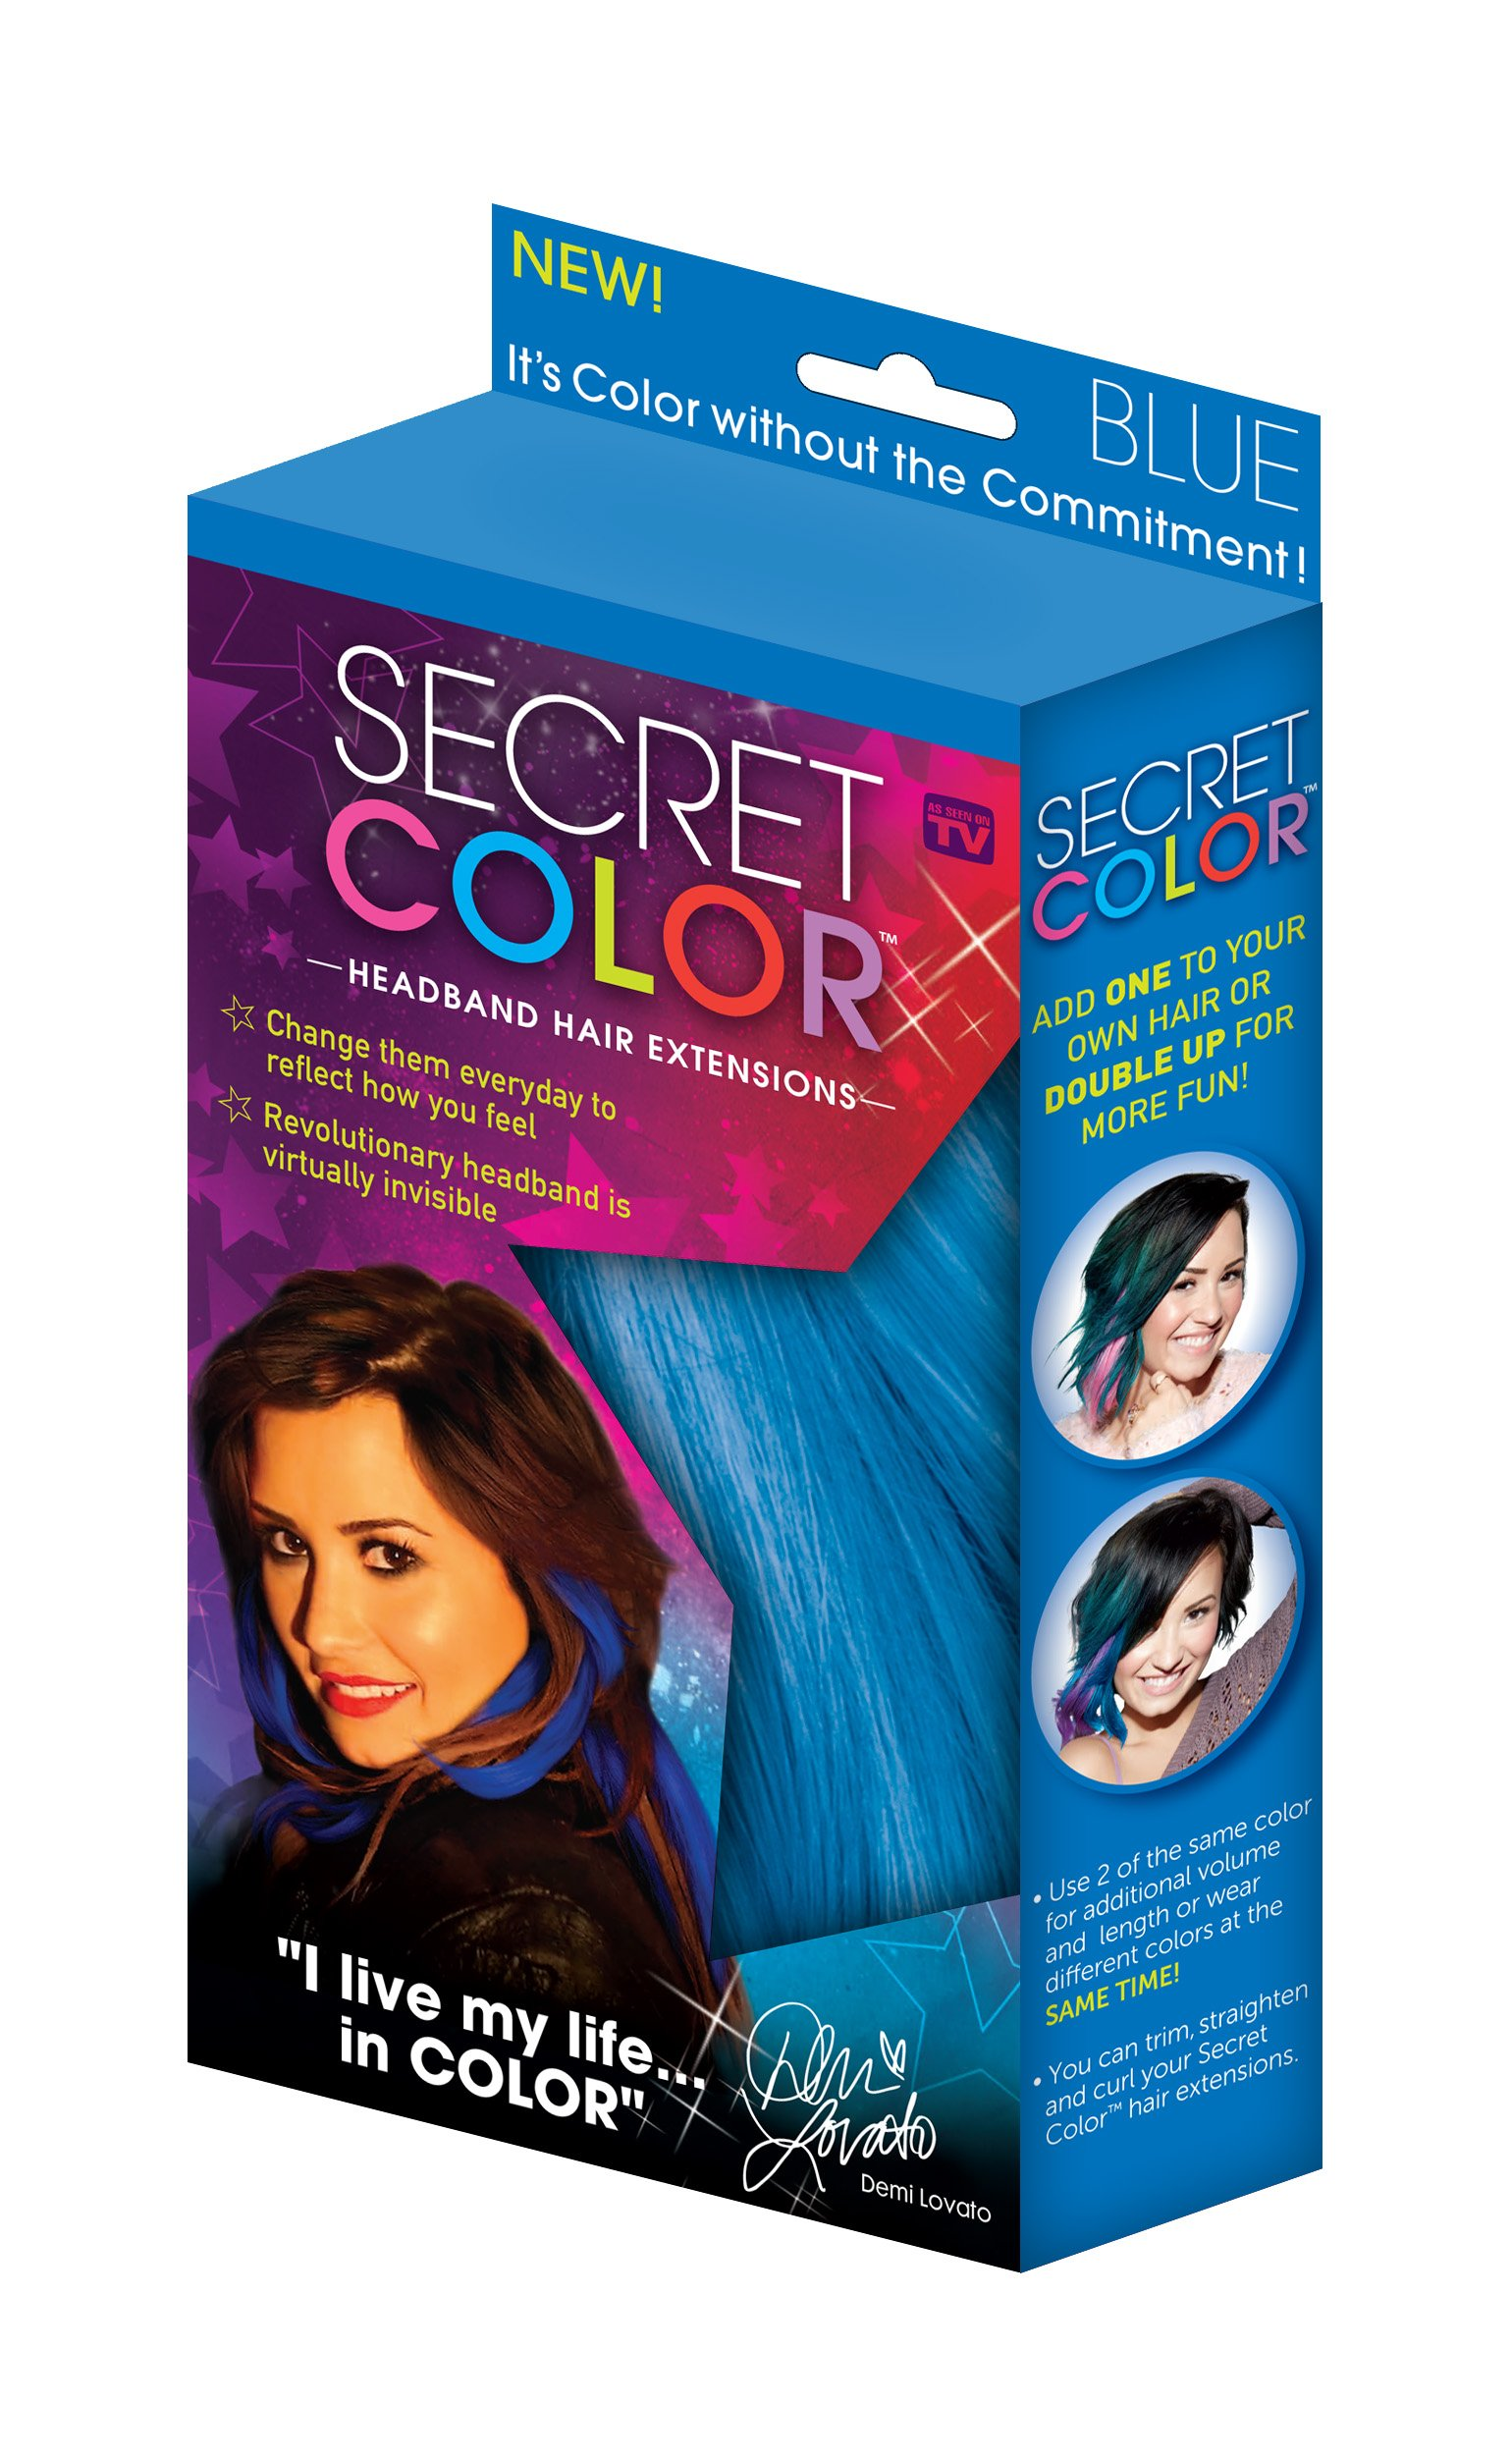 Amazon.com: Secret Color Hair Extensions, Blue: Beauty